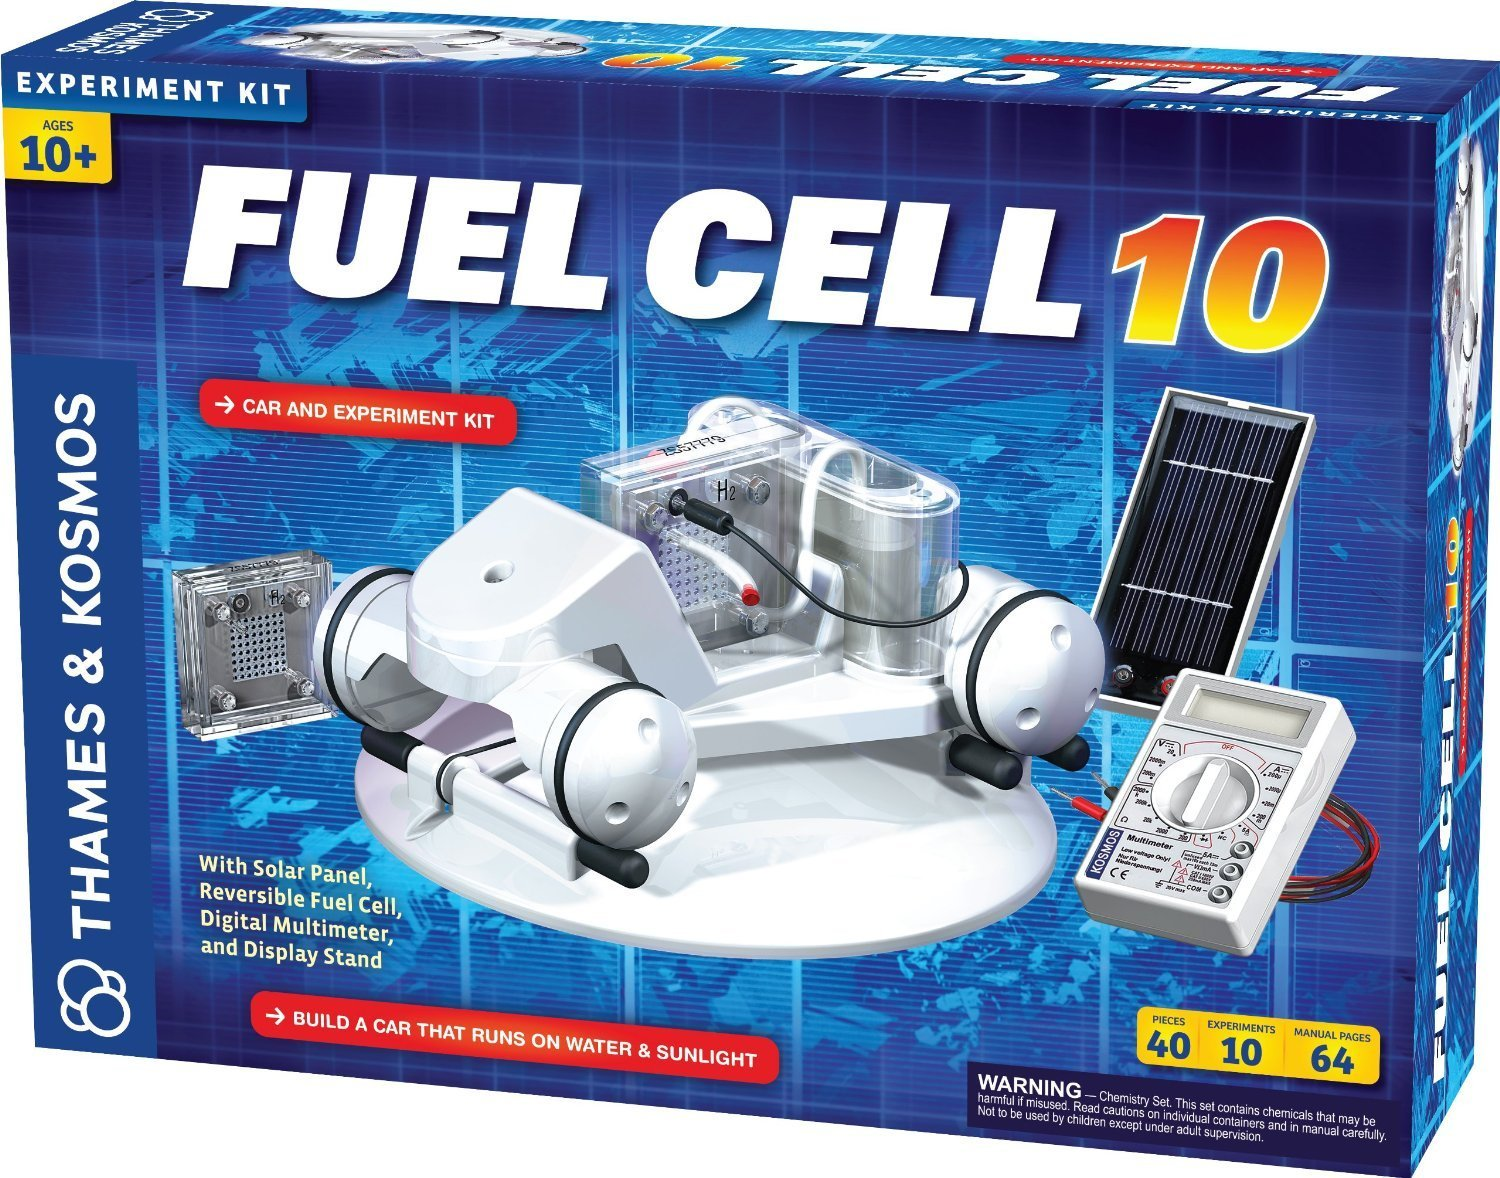 Science Fuel Cell Play Set with Plastic, Metal, Wire, Solar Cell, Fuel Cell, Rolling Display Stand & More